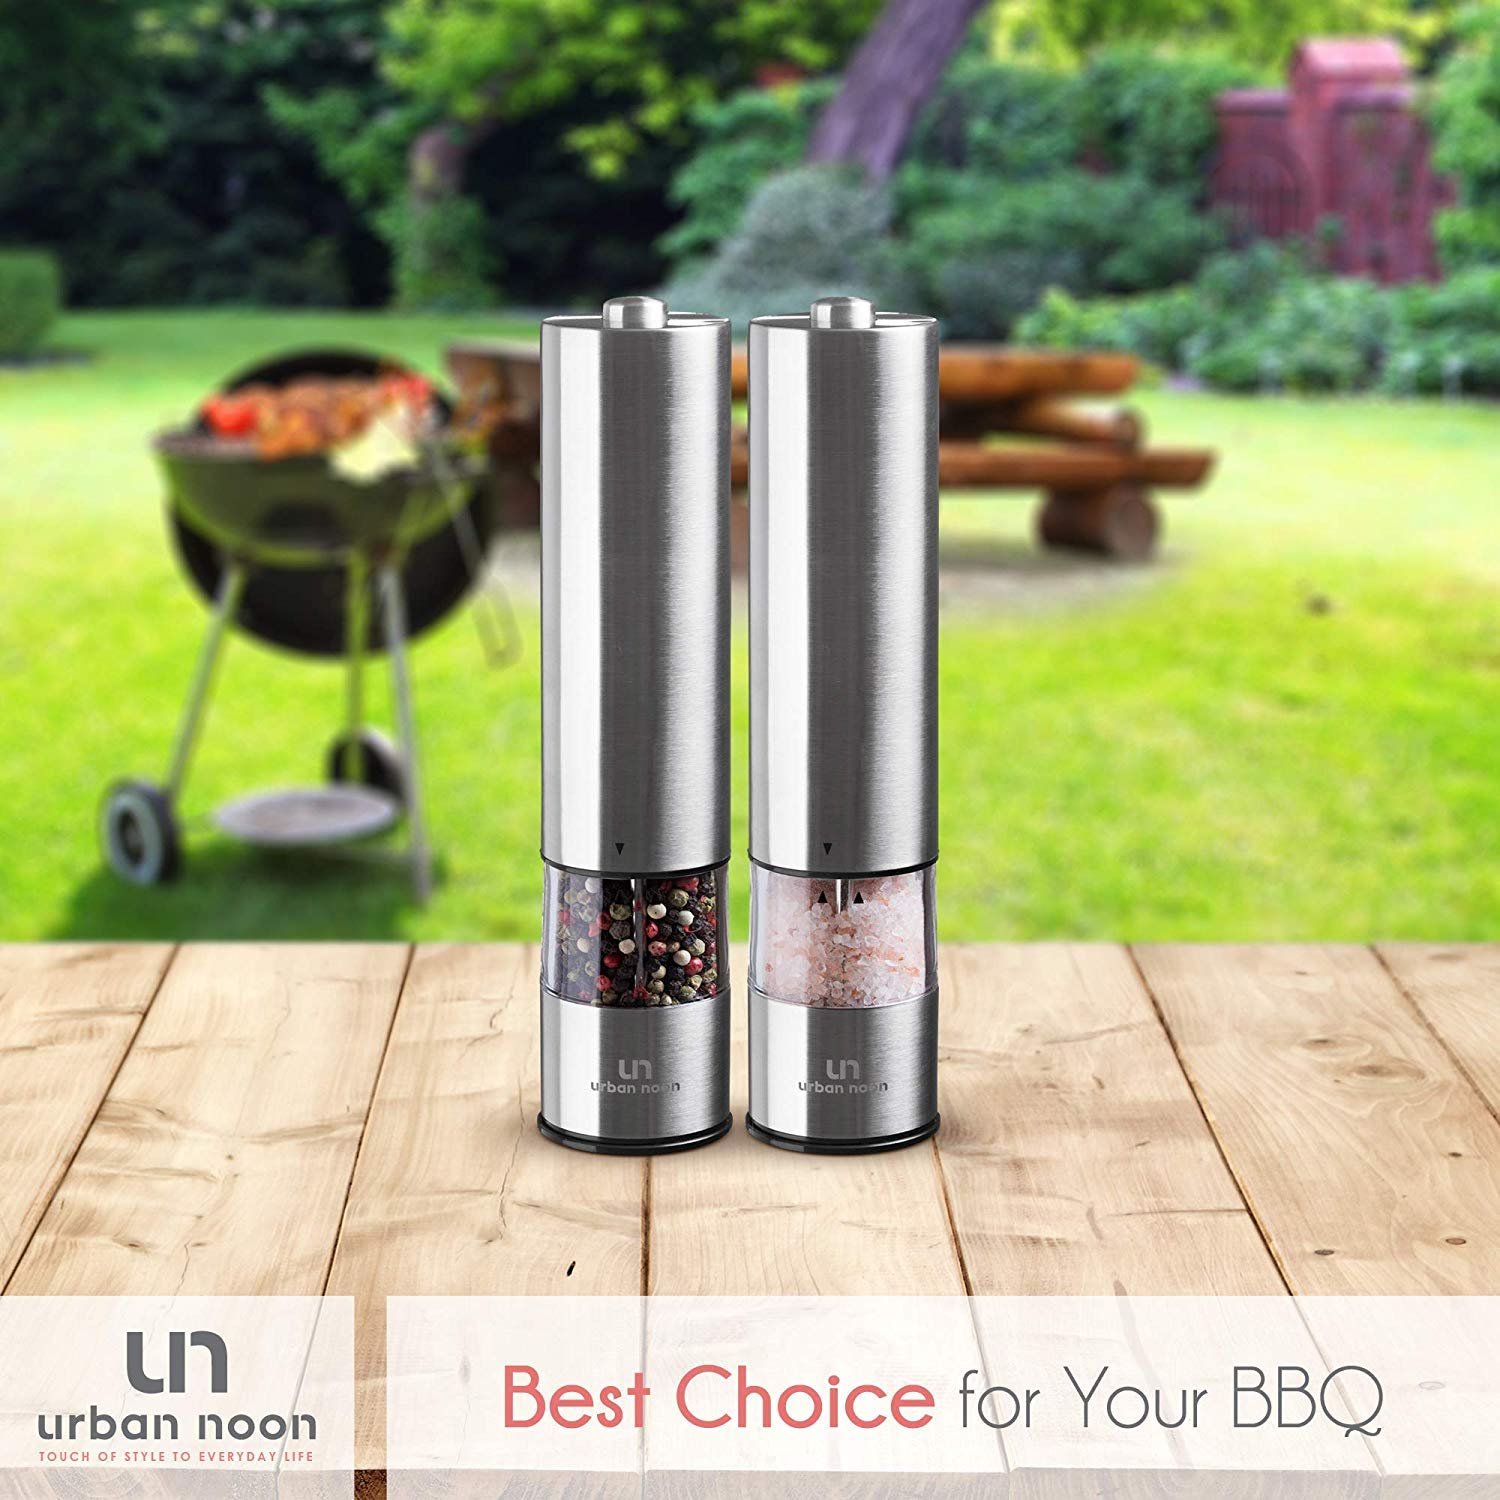 Battery Operated Stainless Steel Mill with Light Ceramic Grinders Electronic Adjustable Shakers - Automatic One Handed Operation Electric Salt and Pepper Grinder Set Pack of 2 Mills